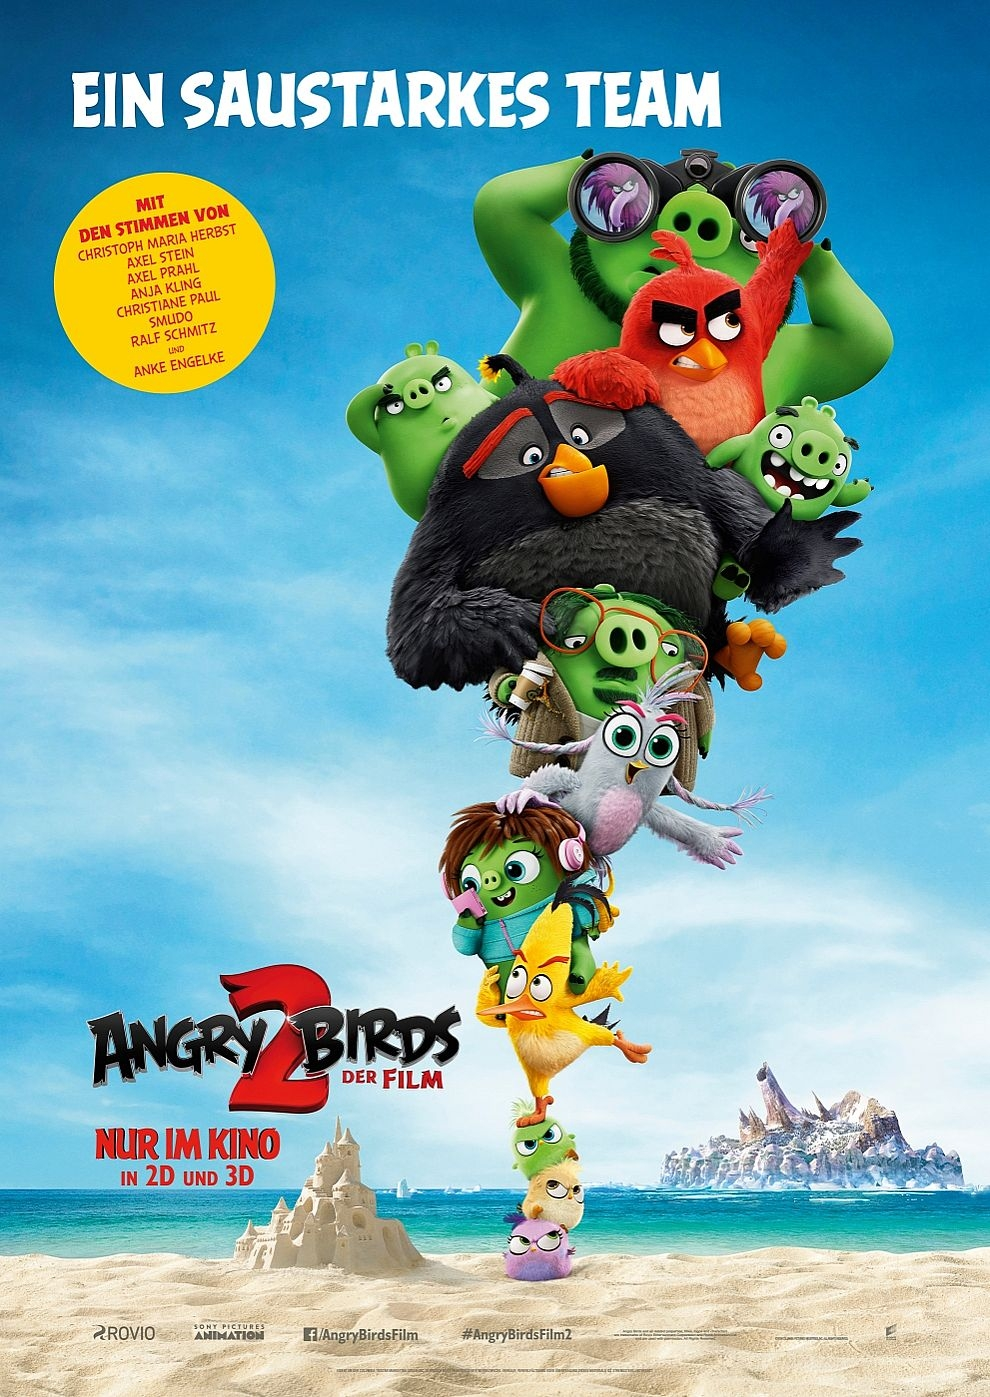 Angry Birds 2 - Der Film (Poster)